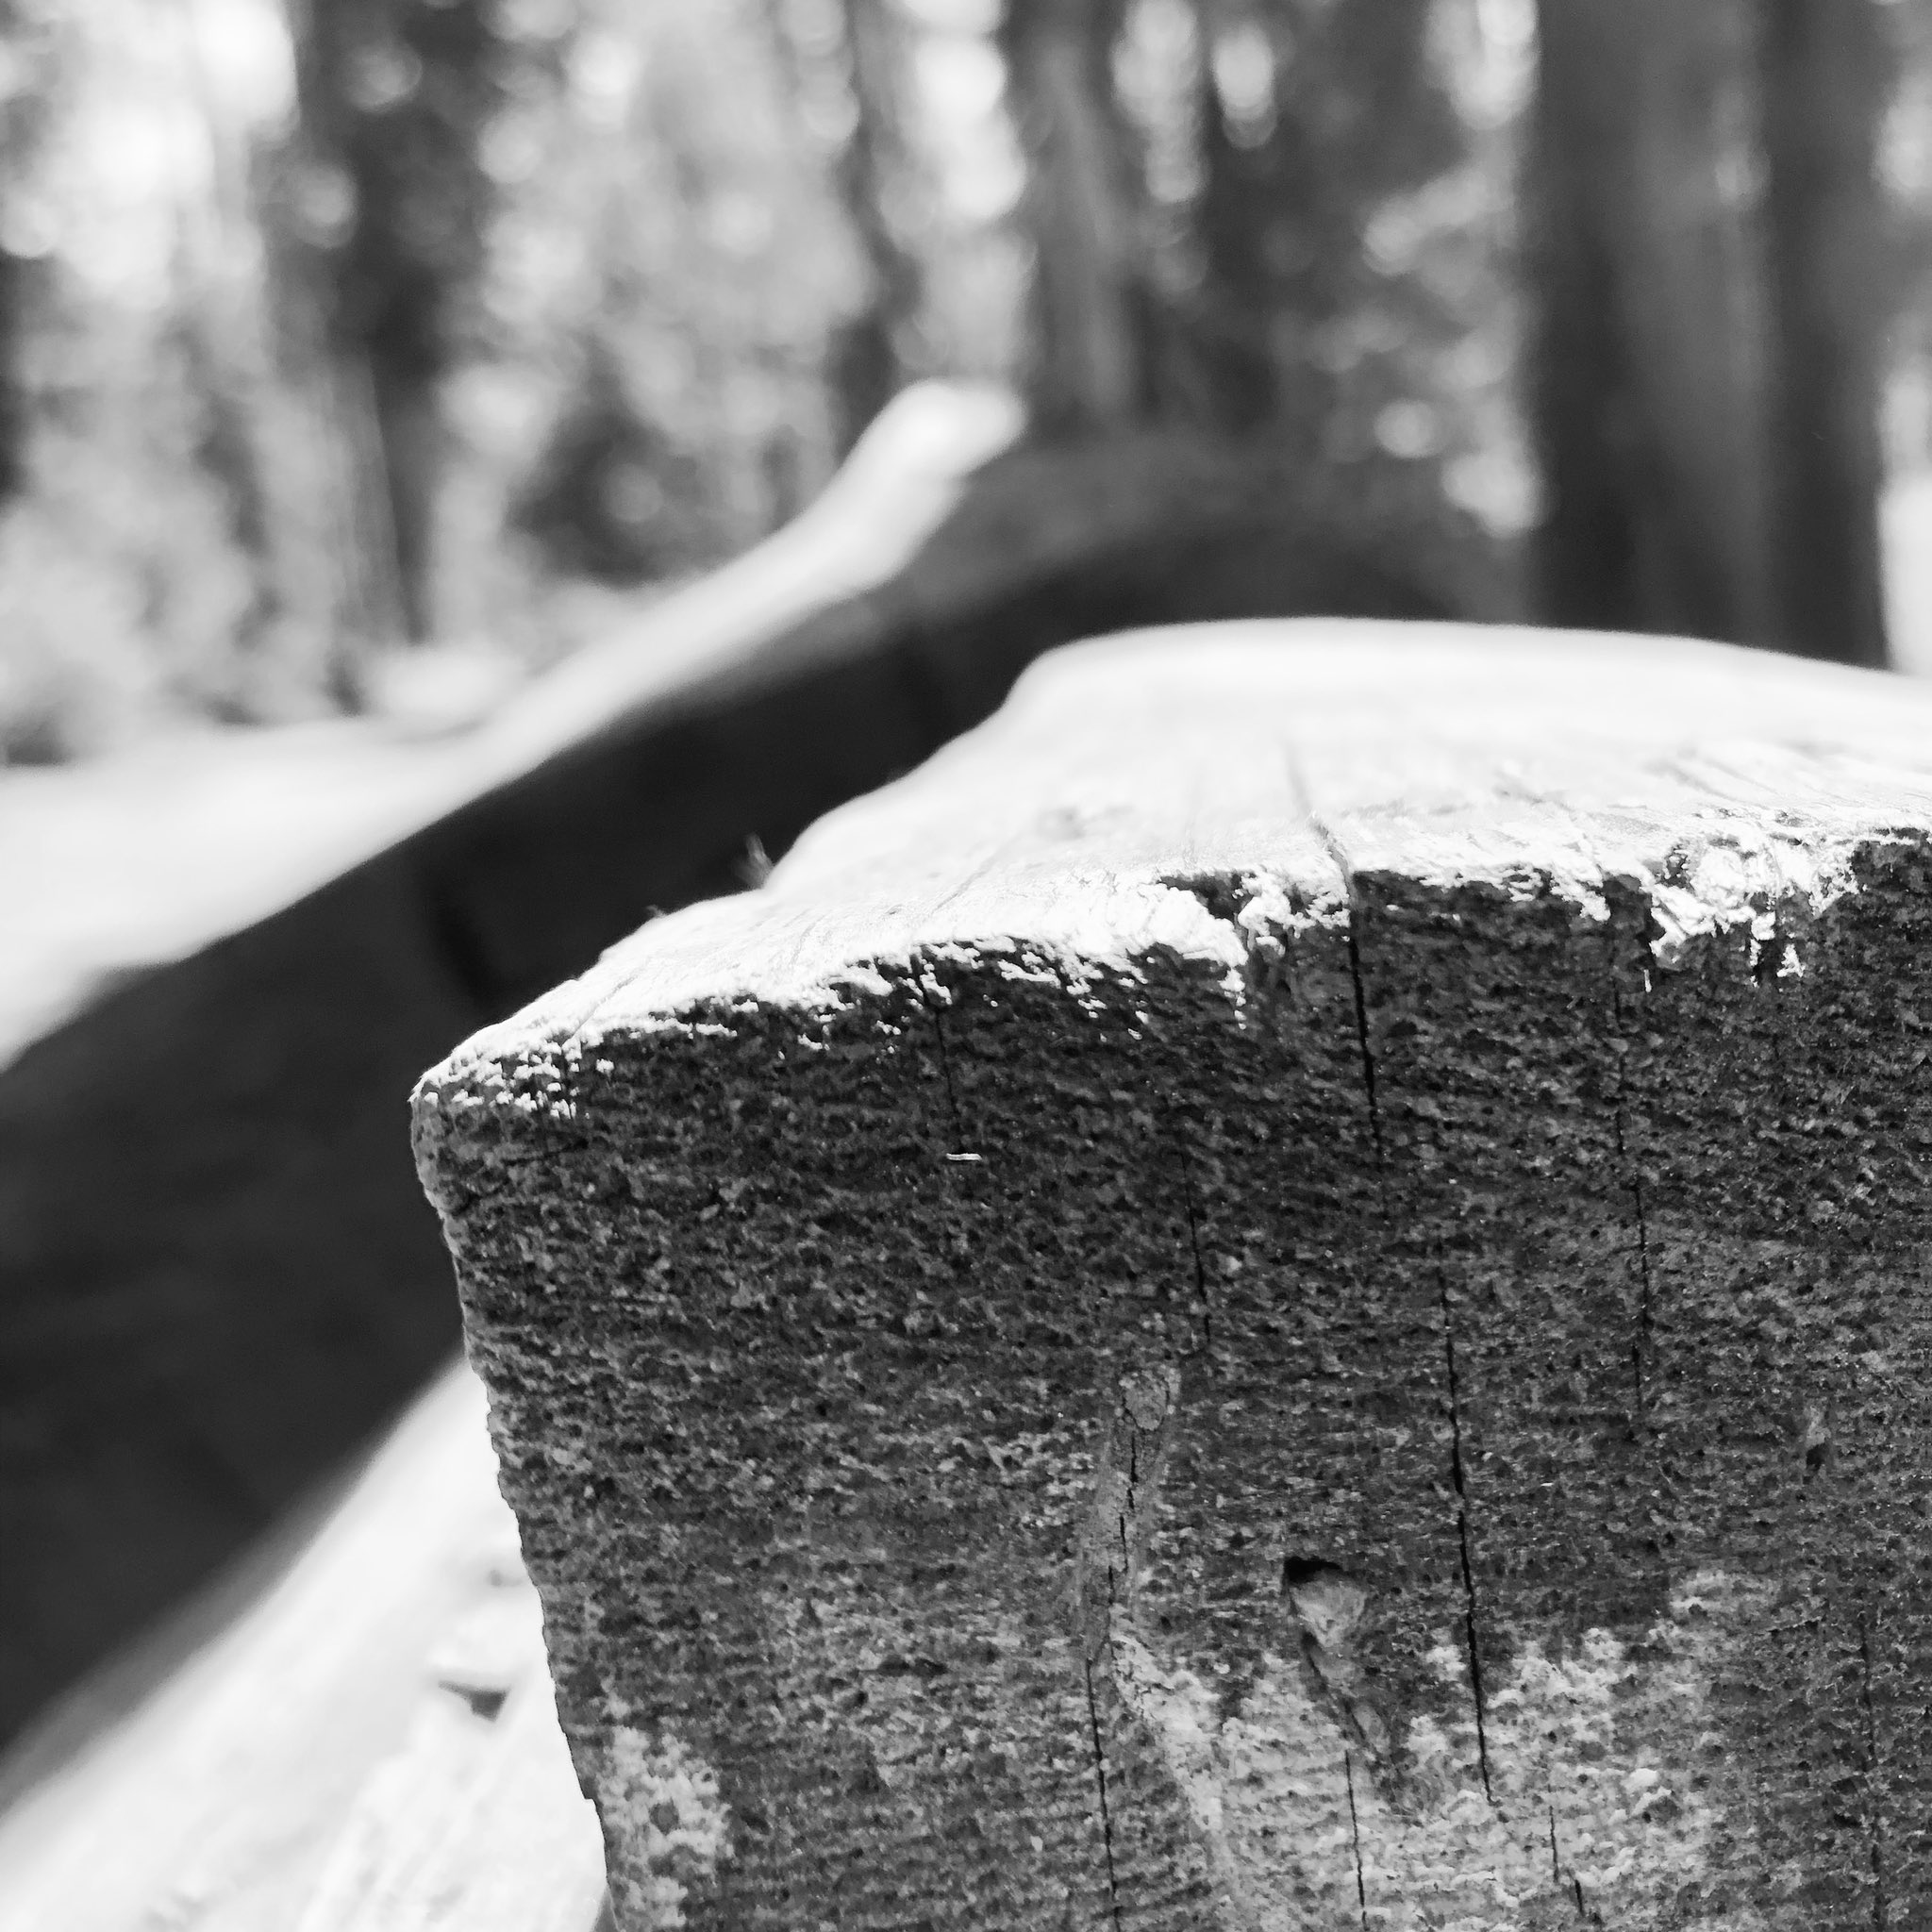 """""""Jesus was made known to them in the breaking of bread.""""  ~ John 24:35  Google Photos labeled this pic as """"bread"""" even though it's wood in Yosemite taken during our trip there. Turns out that combination  fits well into the theme of Easter and the Cross. #gospel #todaysreadings https://t.co/tHsiPiZCdP"""